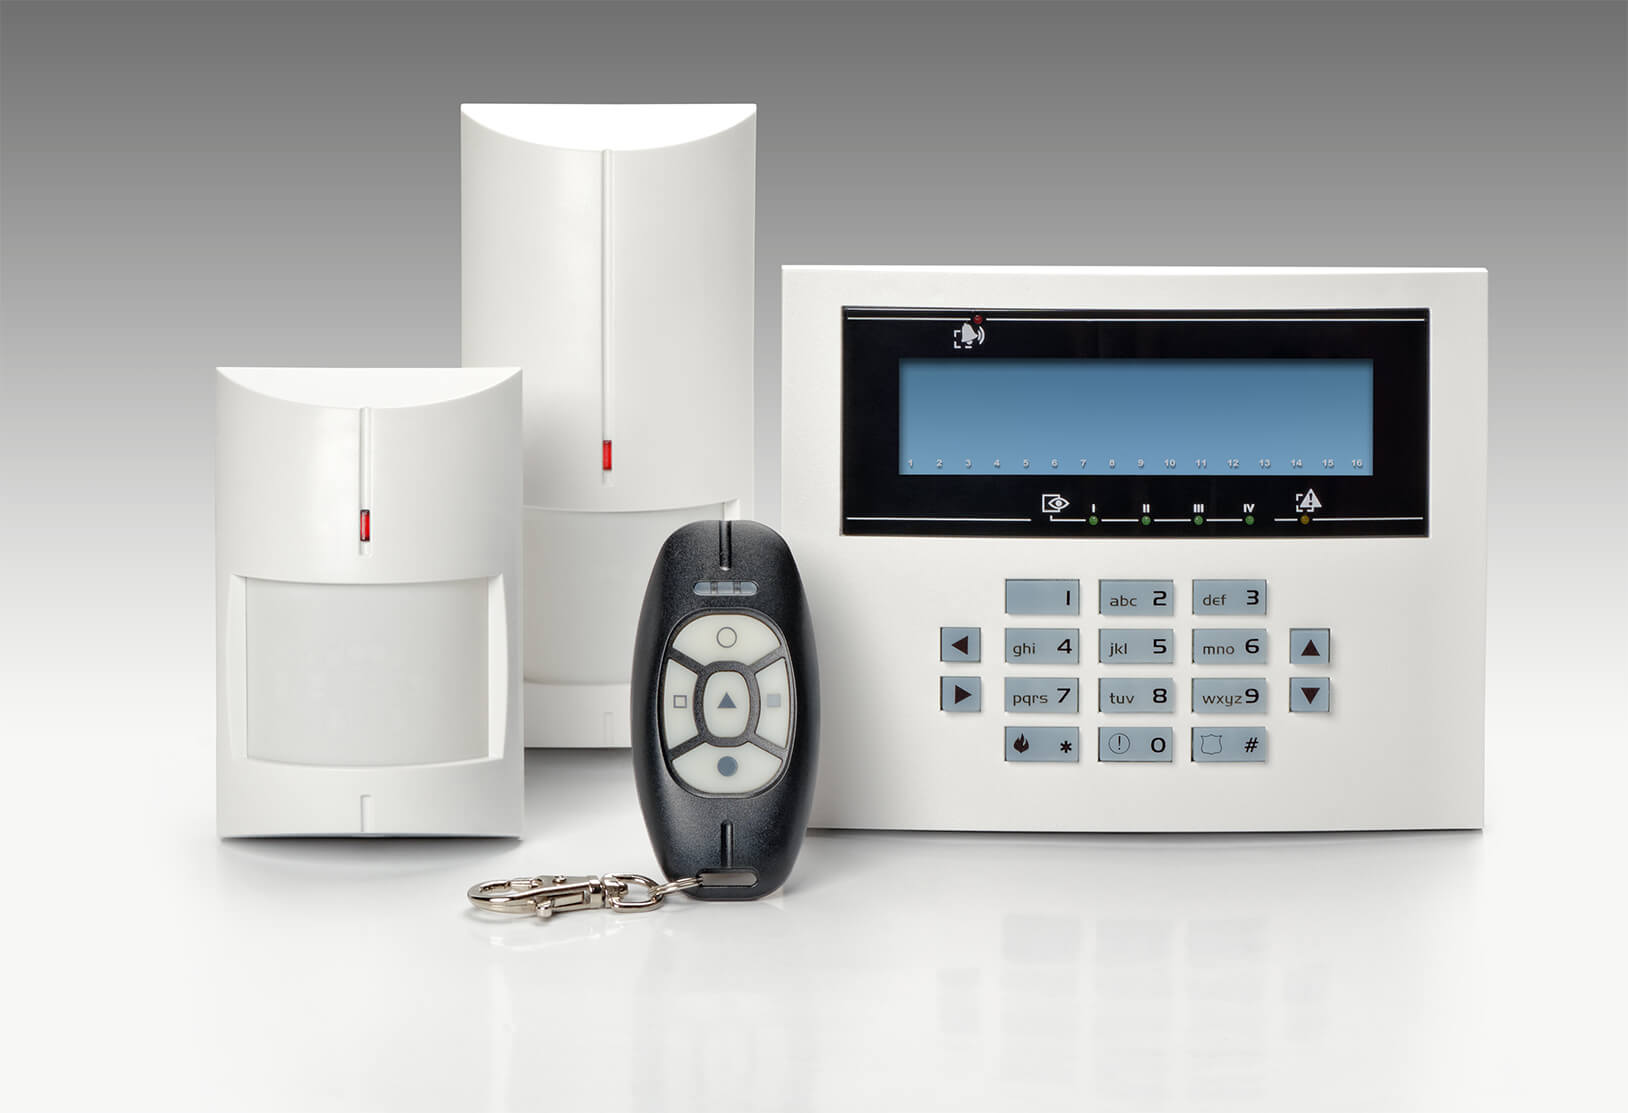 Business & Residential NACOSS Approved Burglar Alarms In Holborn EC1 - Local Holborn EC1 security company.Call 02078872244 - Dedicated to Safety & Security. Companies, shops and homes ..